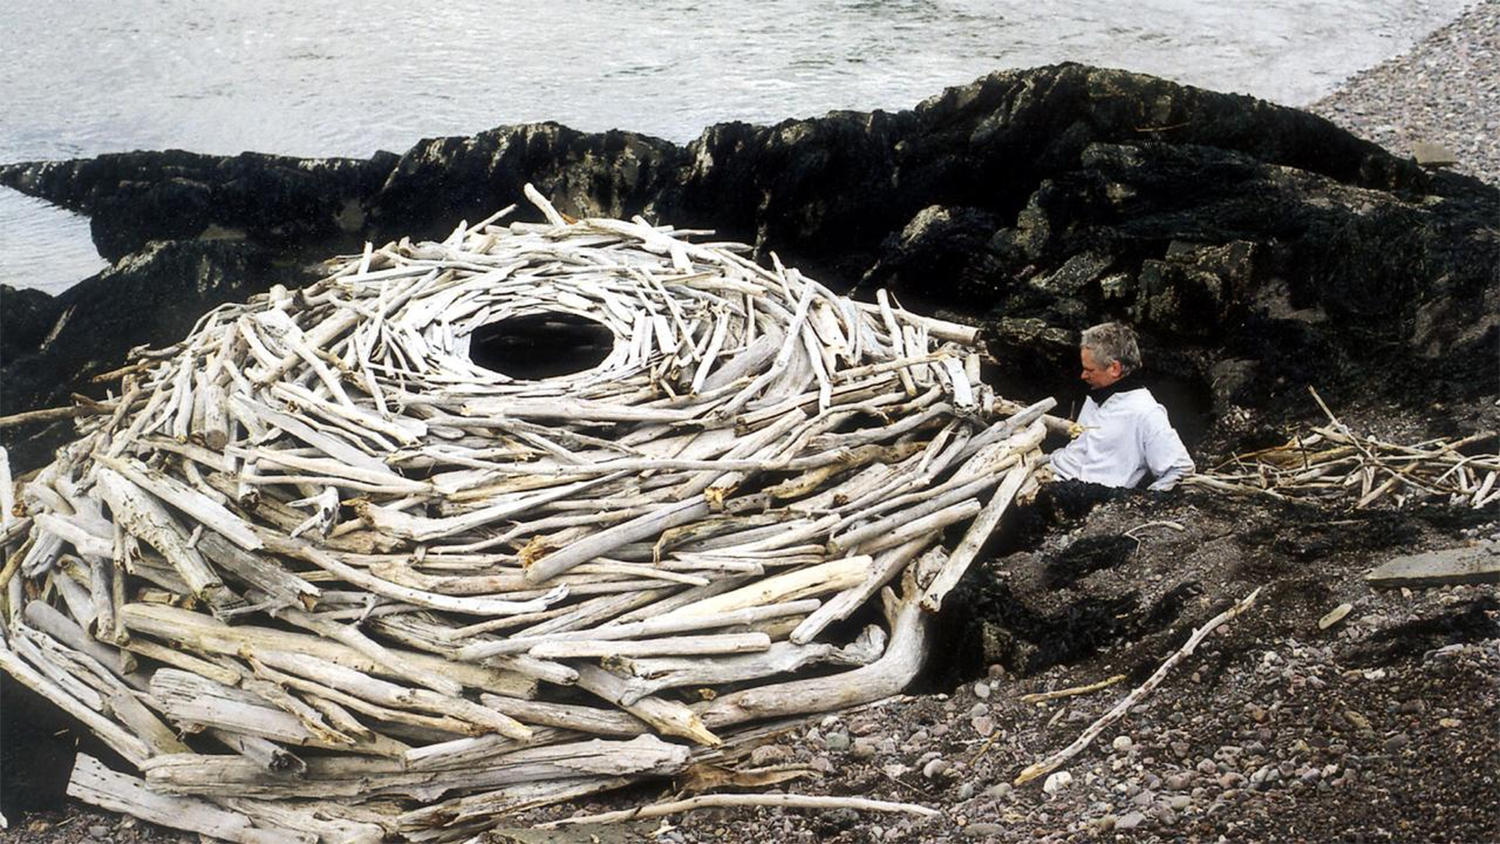 Andy Goldsworthy working on an environmental art piece